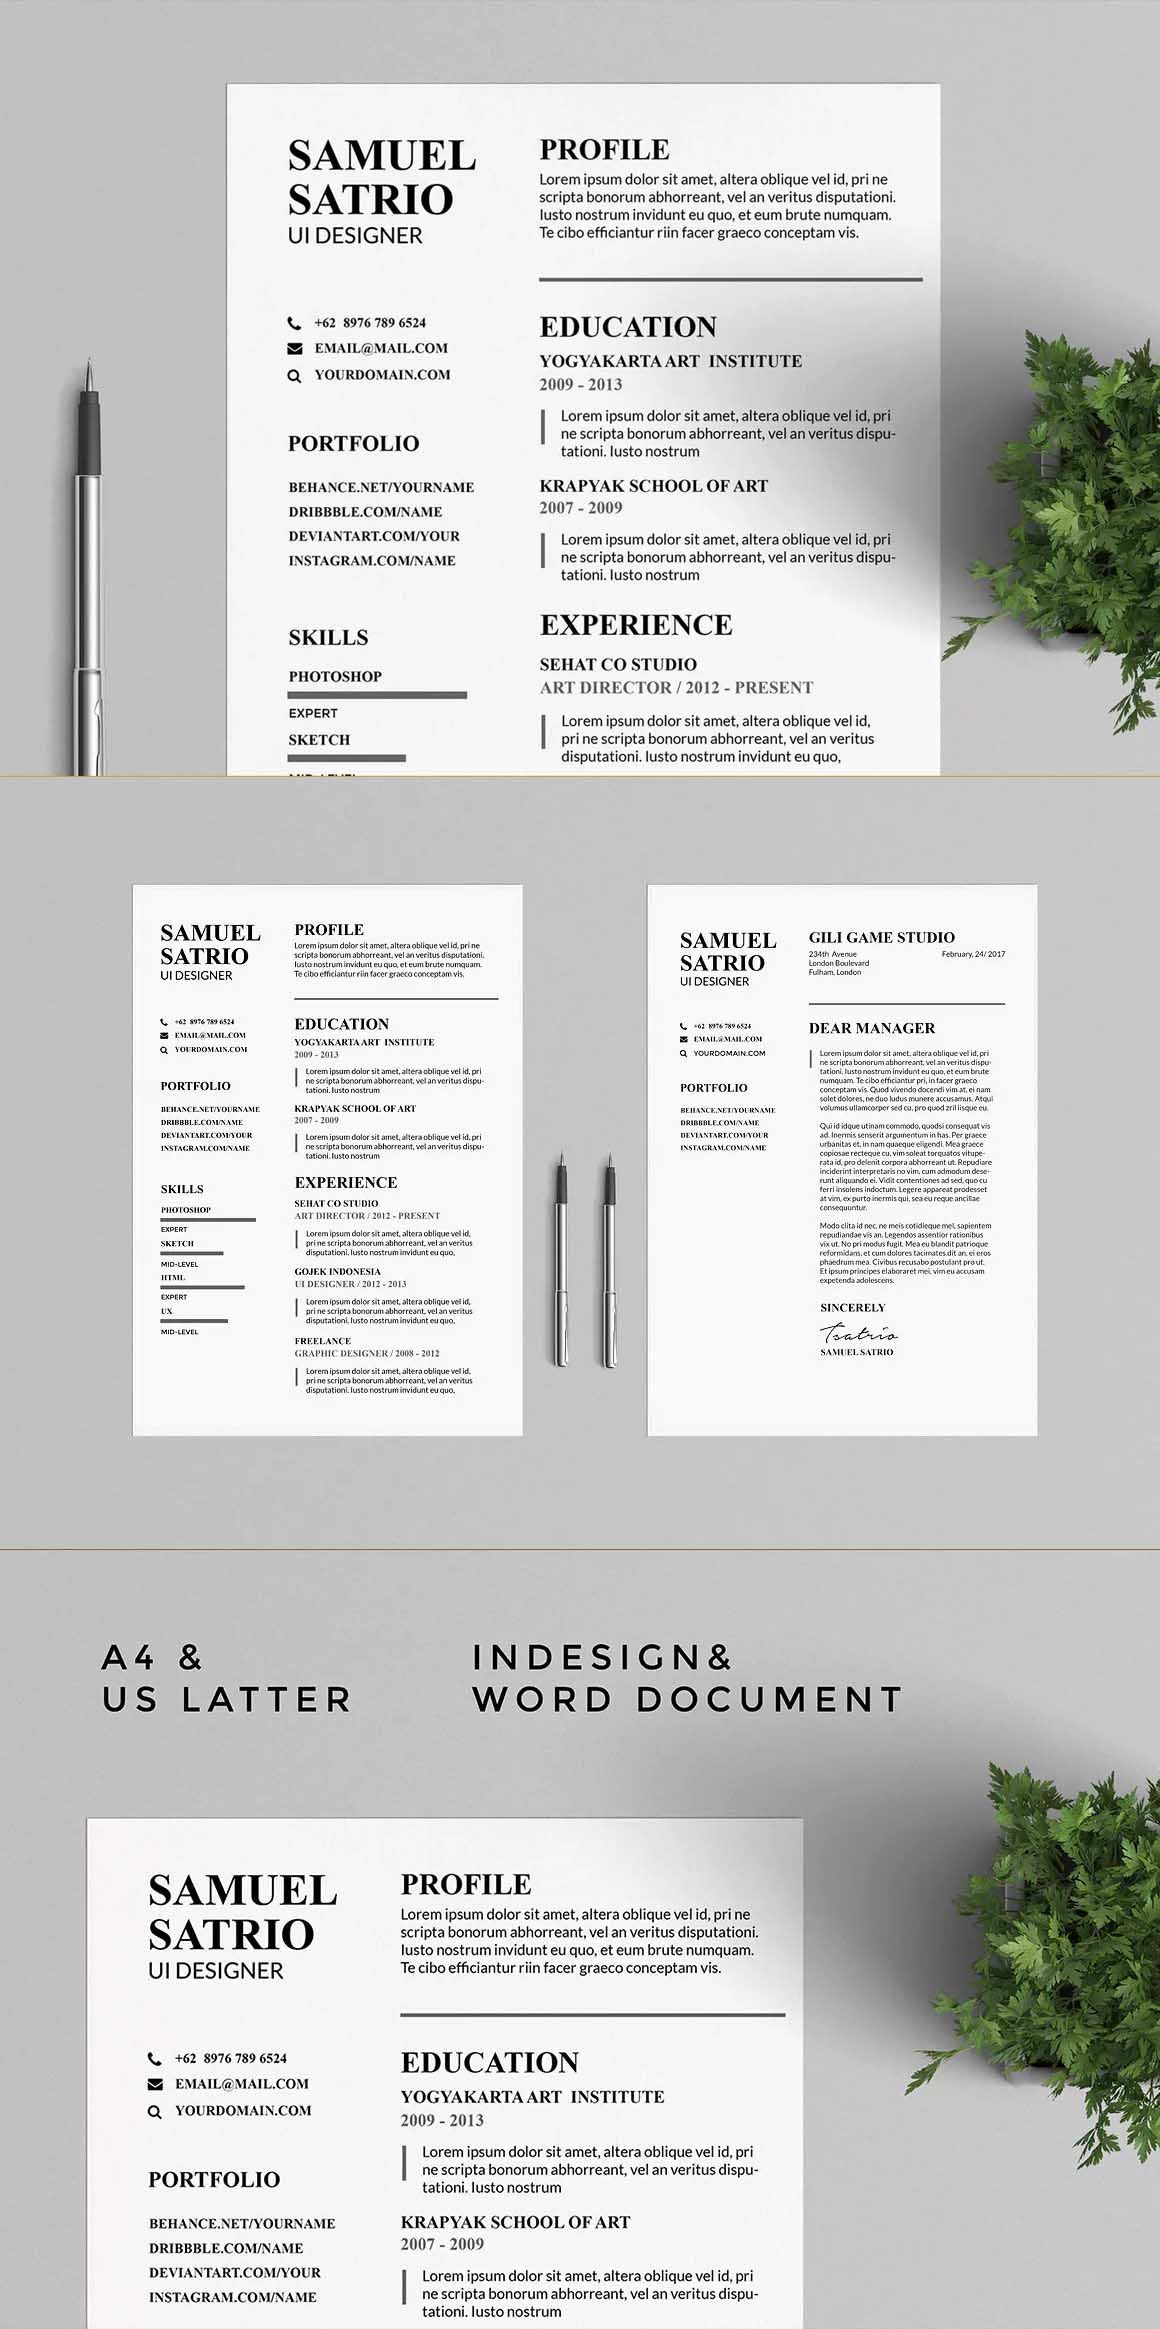 Resume Templates Indesign Pros Resume & Cv Templates Indesign Indd Ms Word  A4 And Us